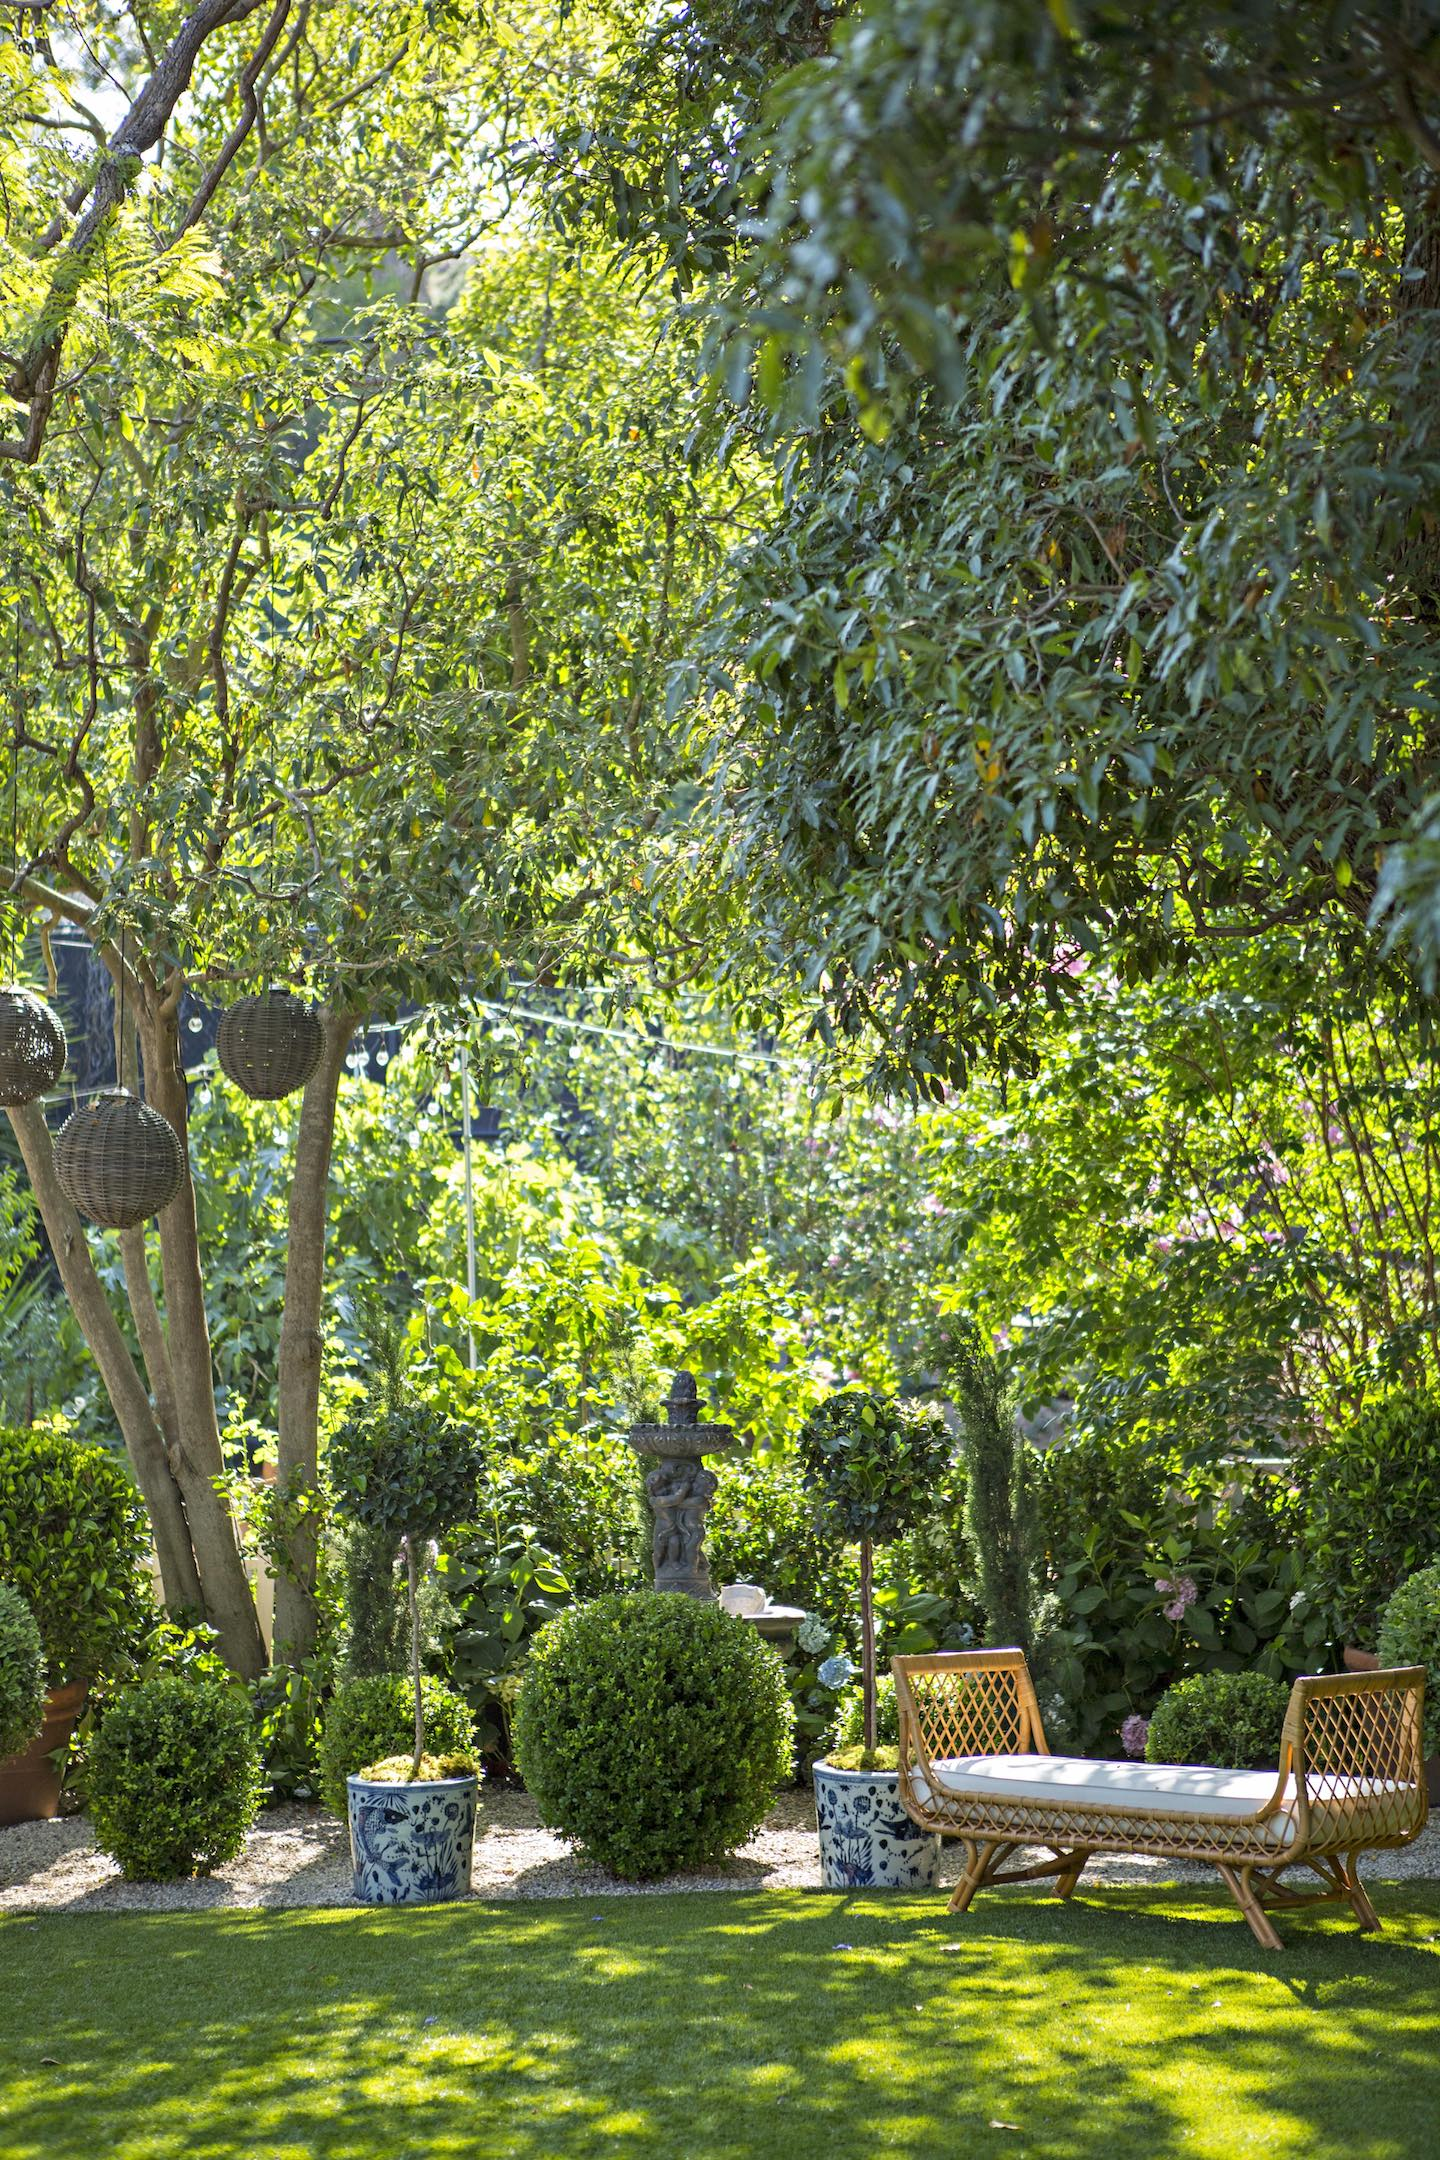 lush green garden with topiaries lanterns and a garden bench